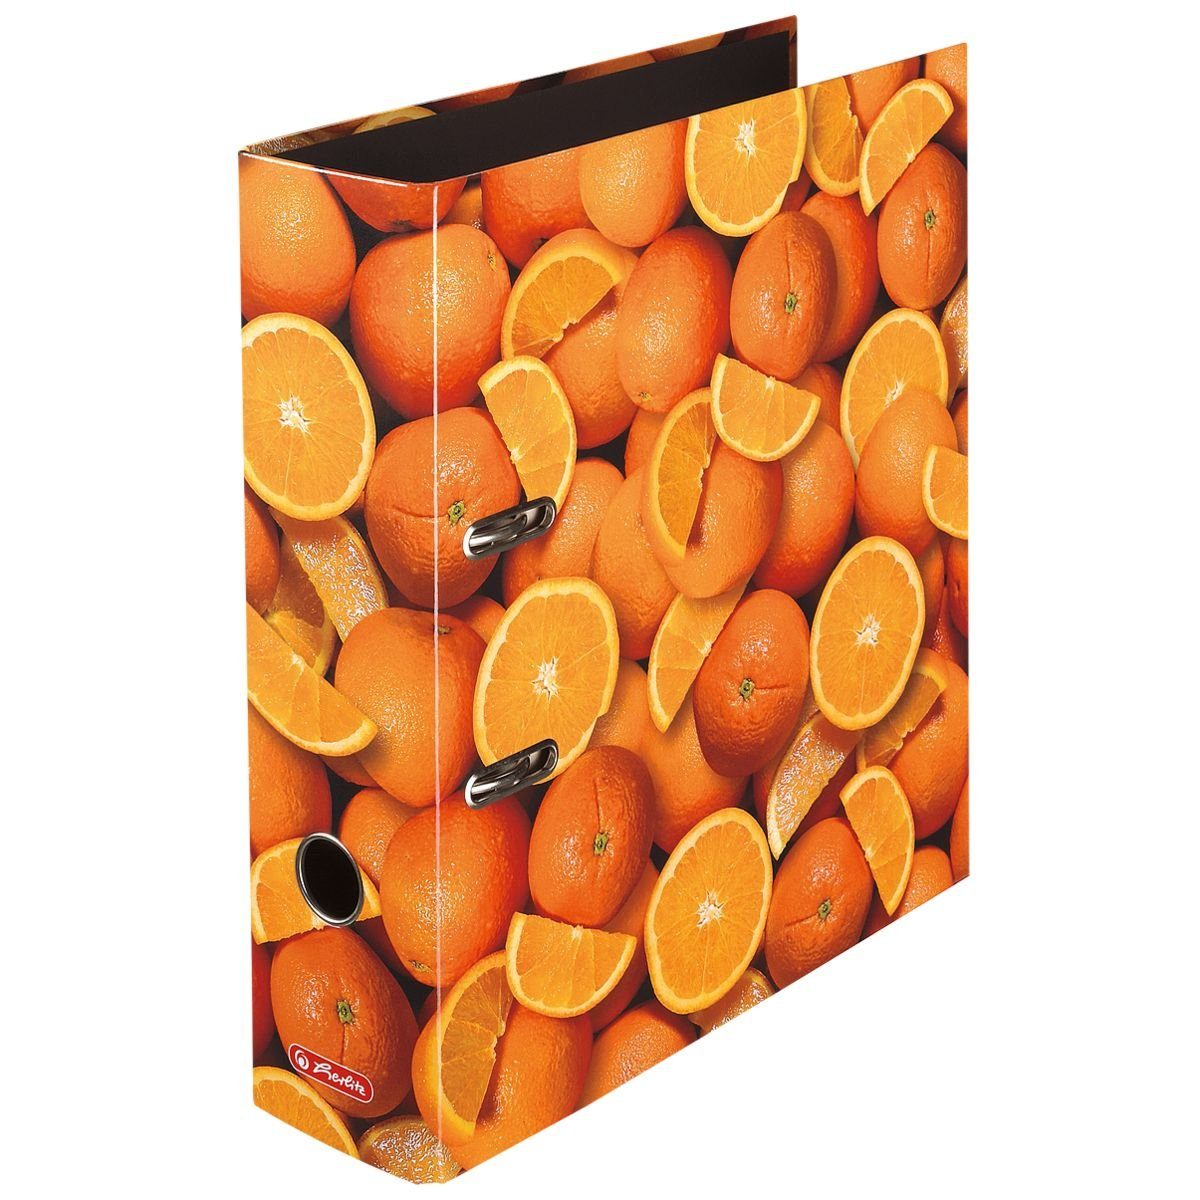 Herlitz Motivordner »Orange«